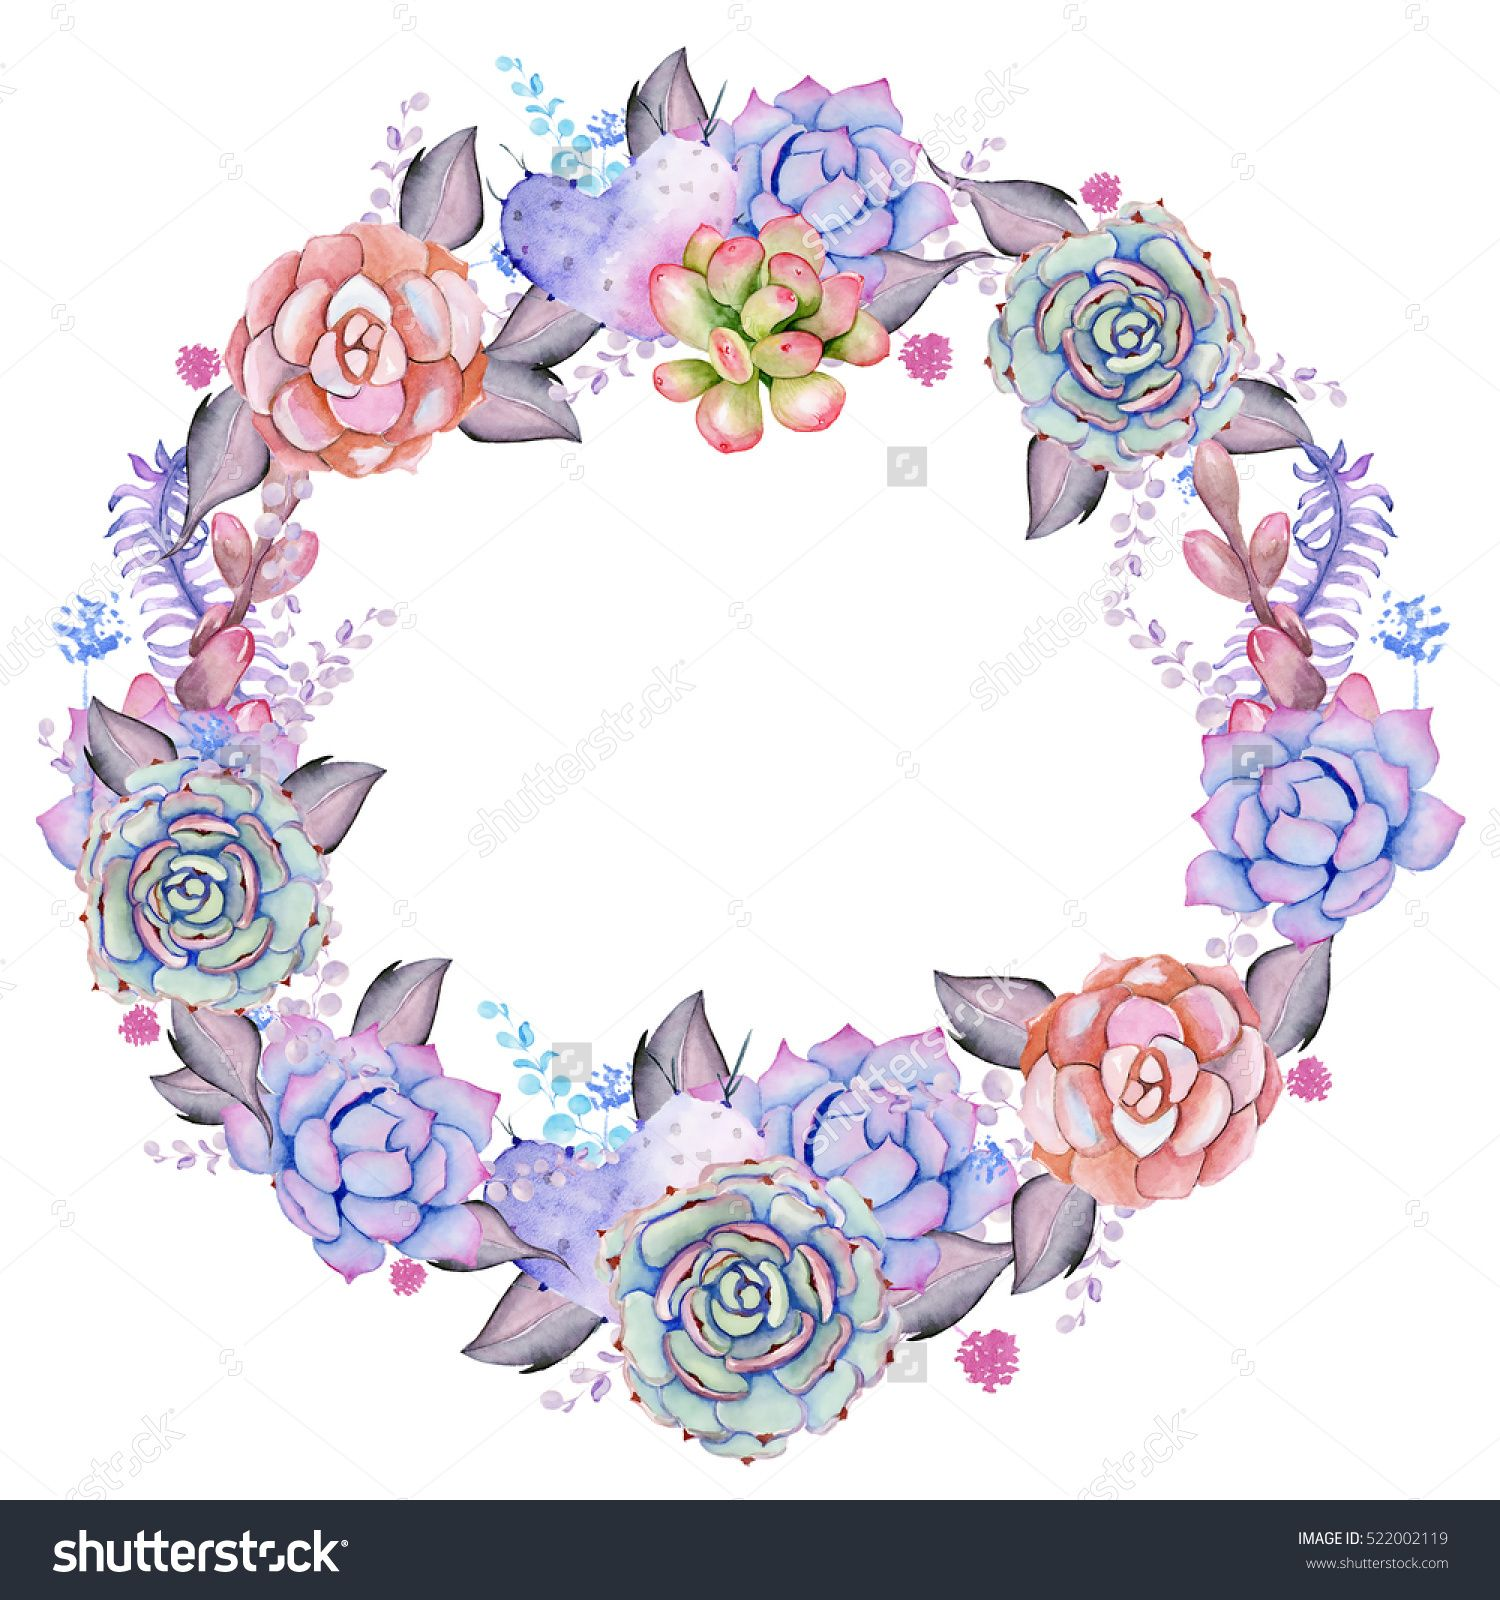 Hand painted watercolor wreath. Unique decoration for greeting card, wedding invitation, save the date. Isolated floral design. Summer succulents with space for your text.